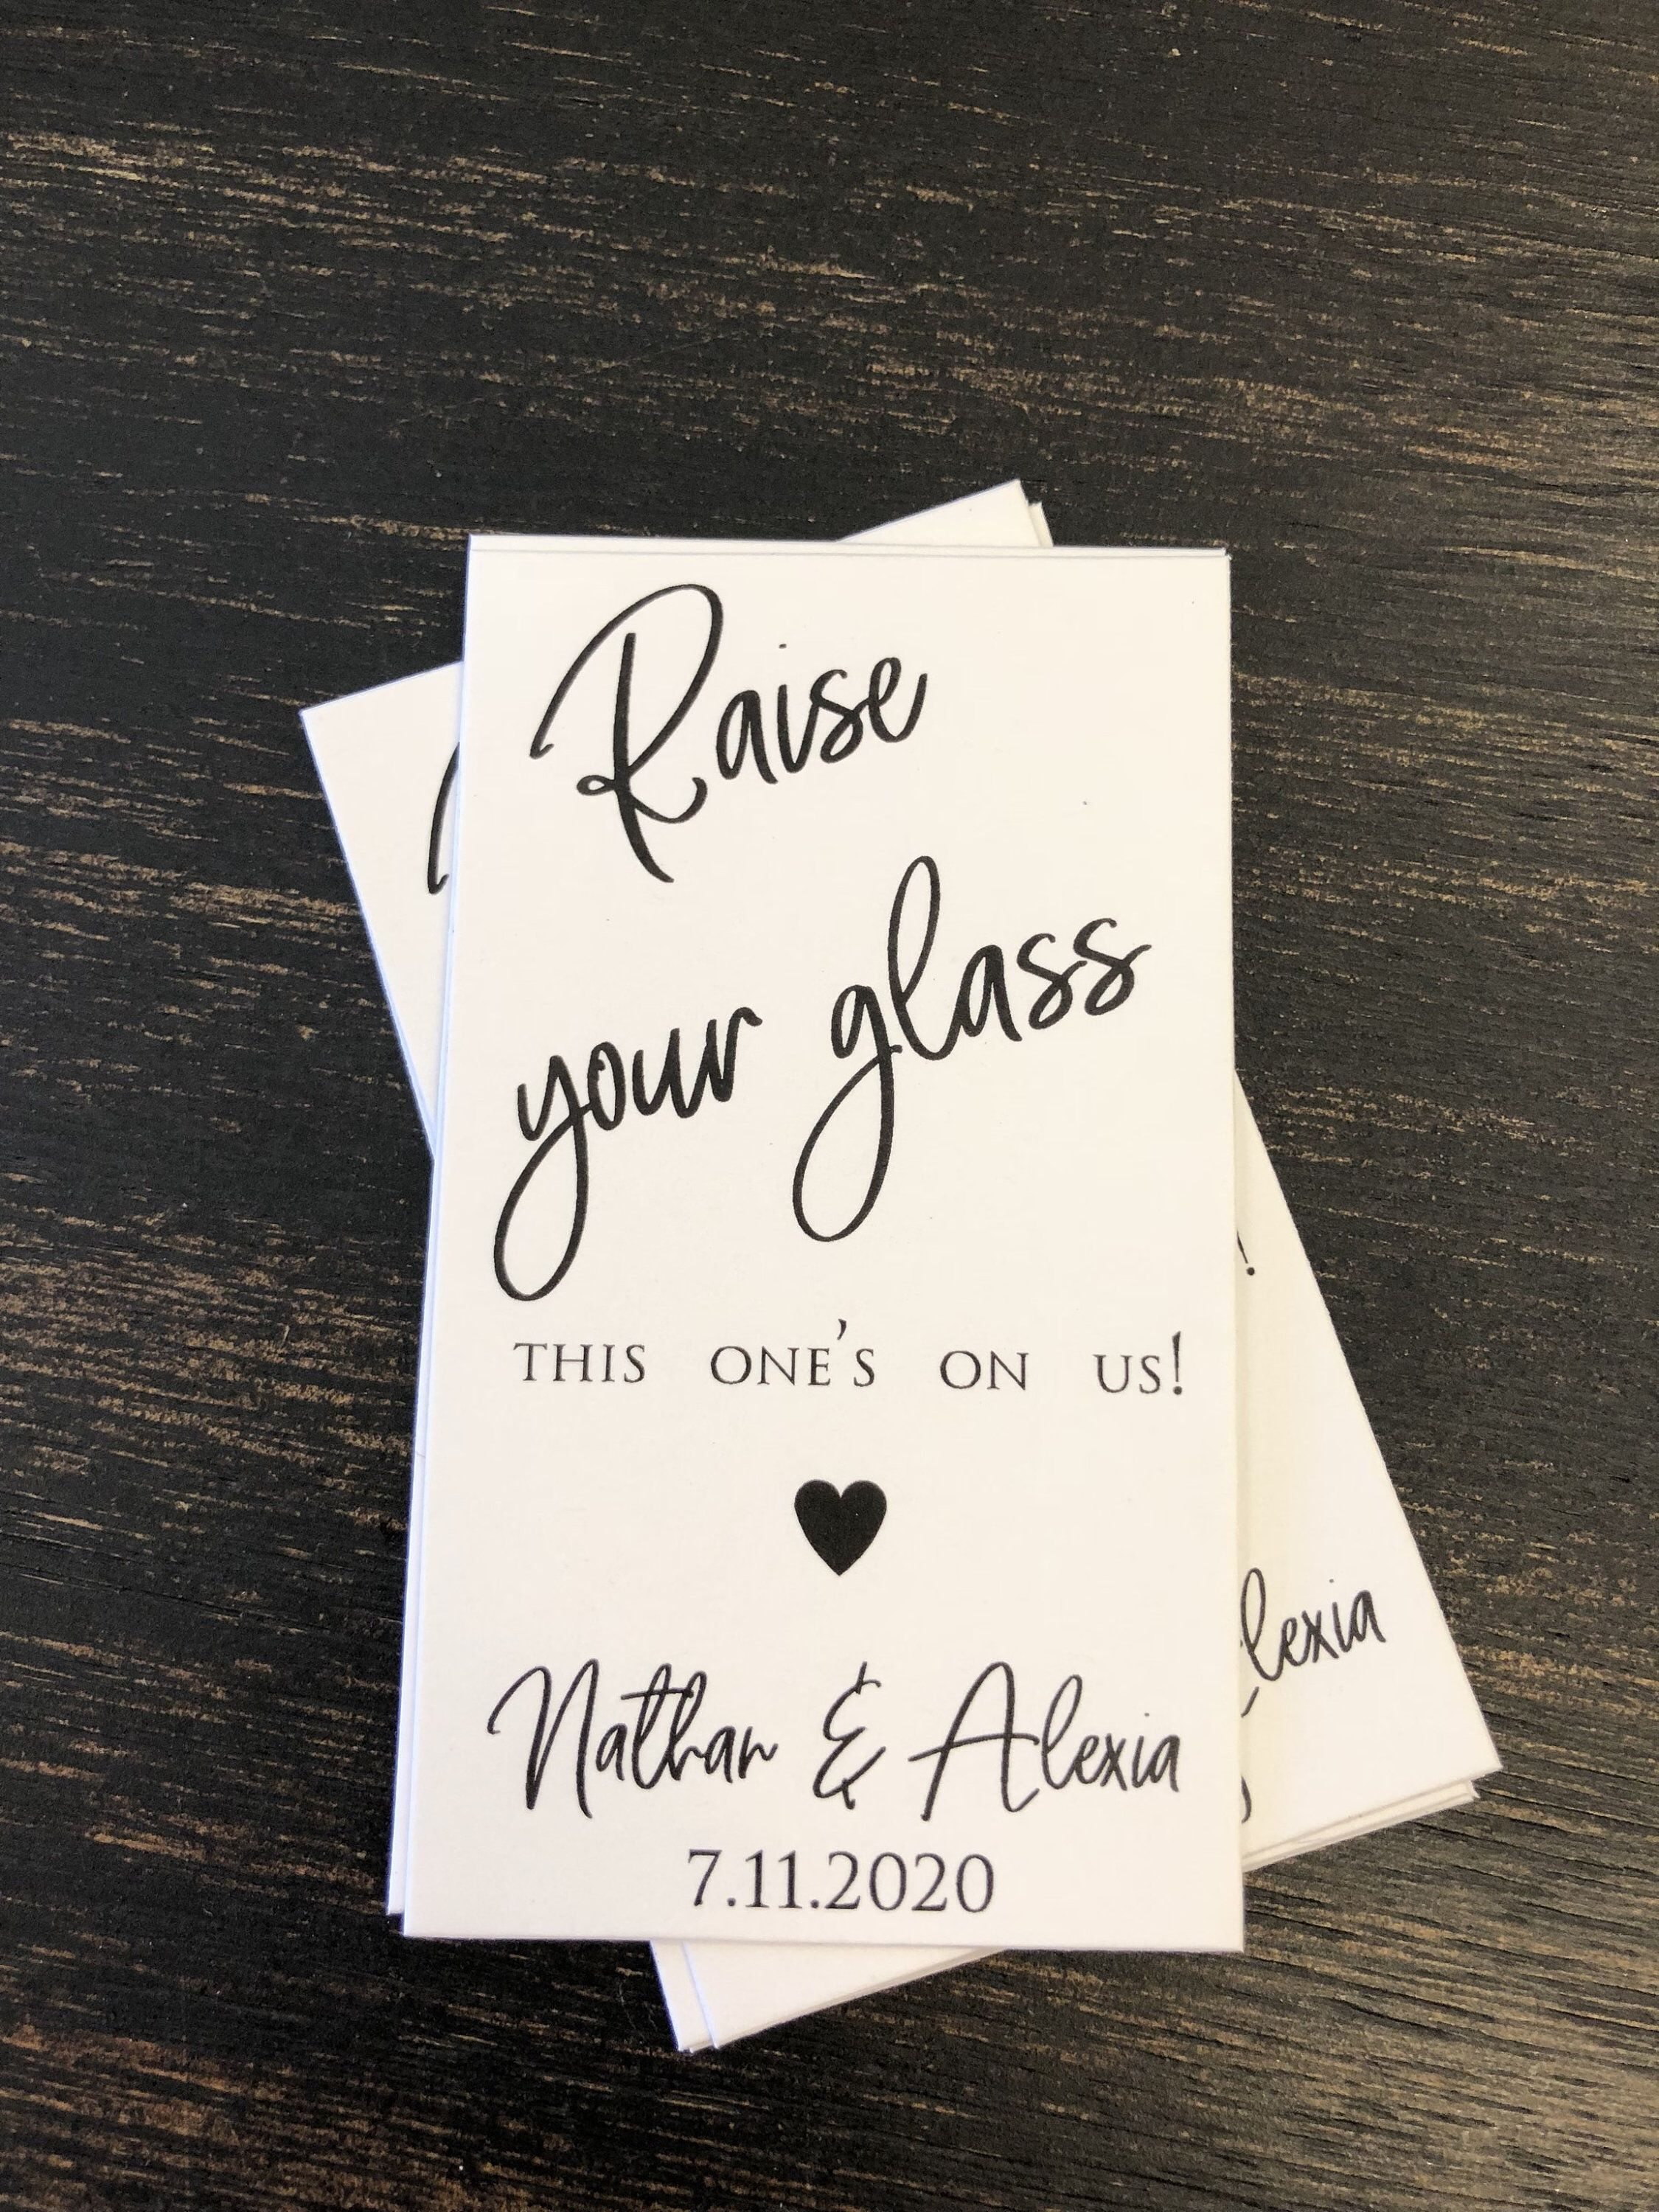 Admit one Drink Token One Drink Personalized 50 Wedding Drink Tickets Redeem for a Drink Coupon Party Bar Tickets Square Rustic